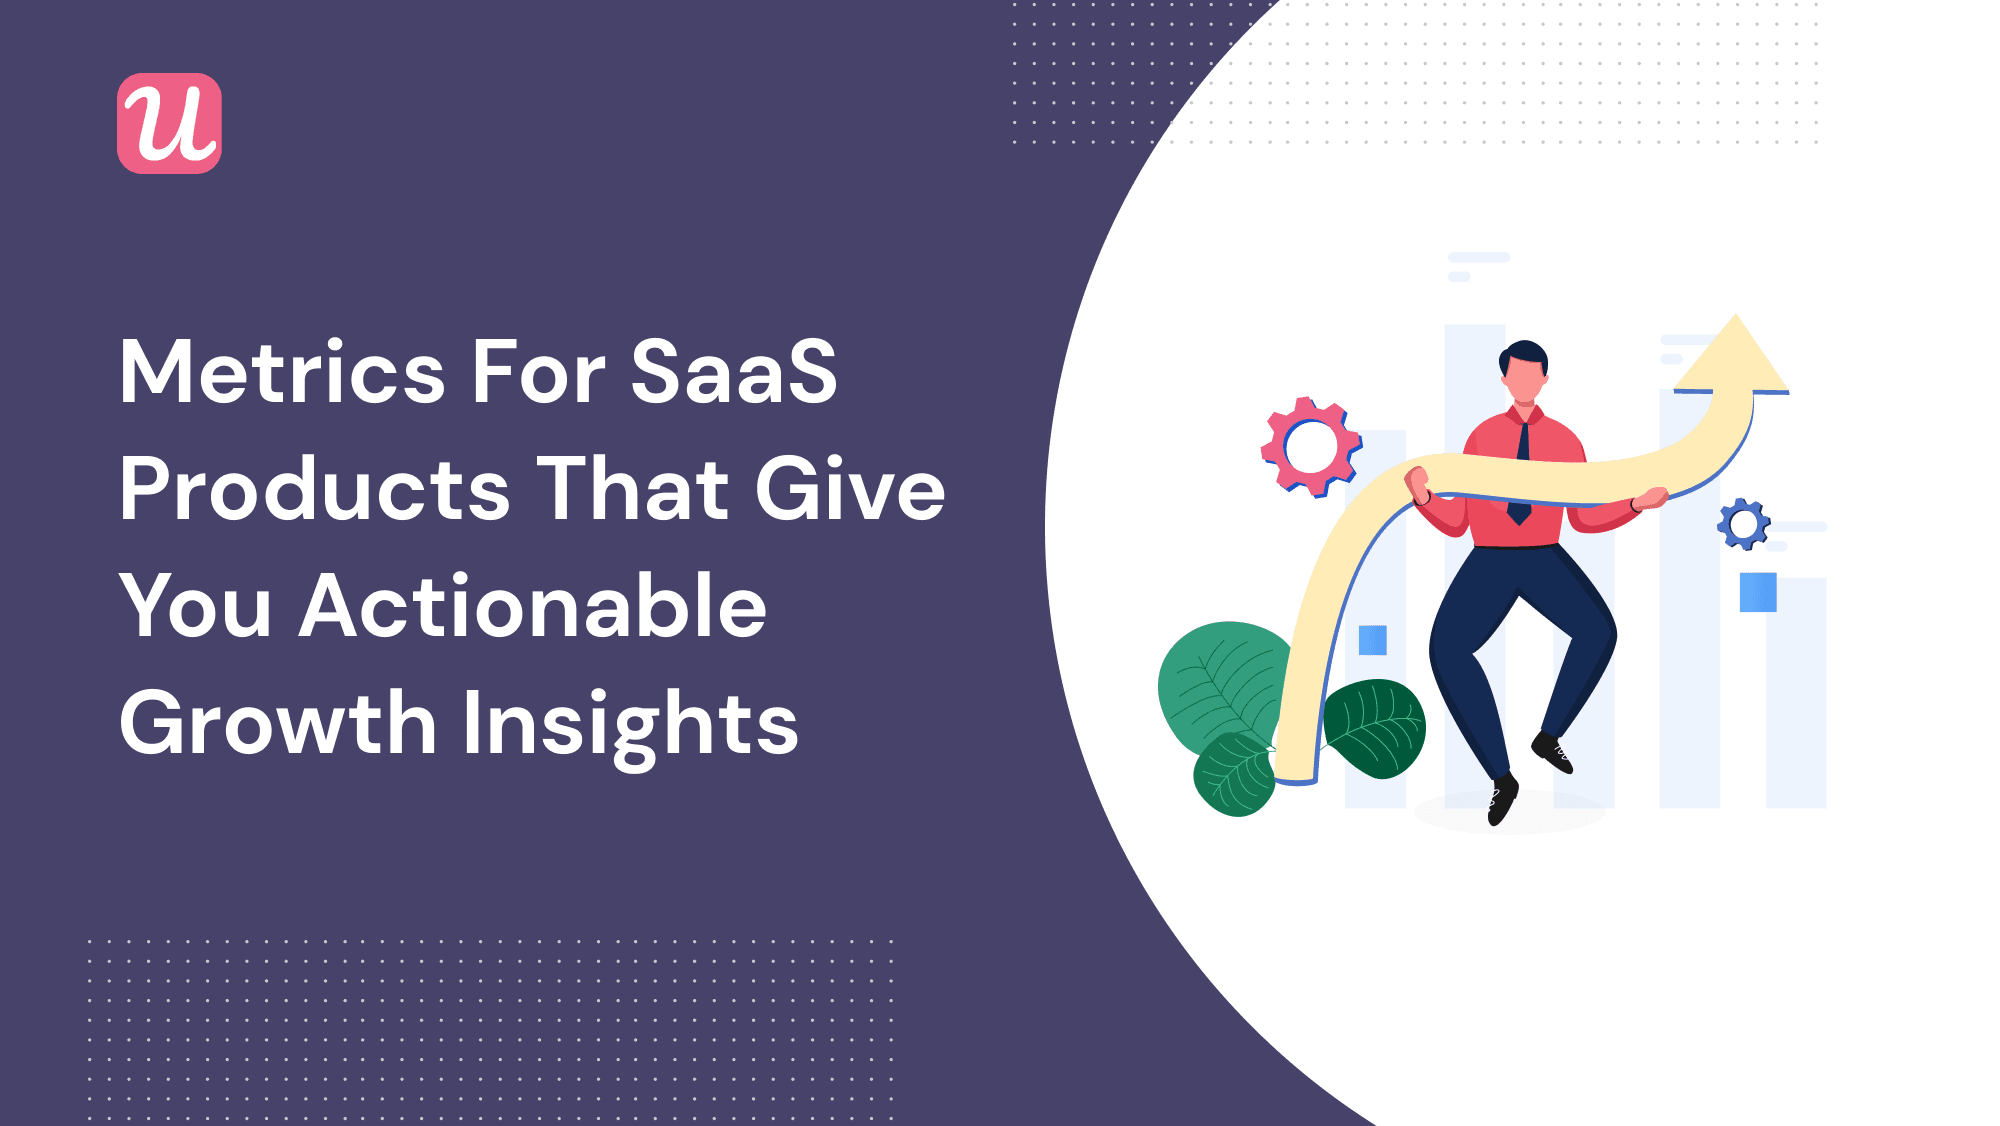 Metrics For SaaS Products That Give You Actionable Growth Insights